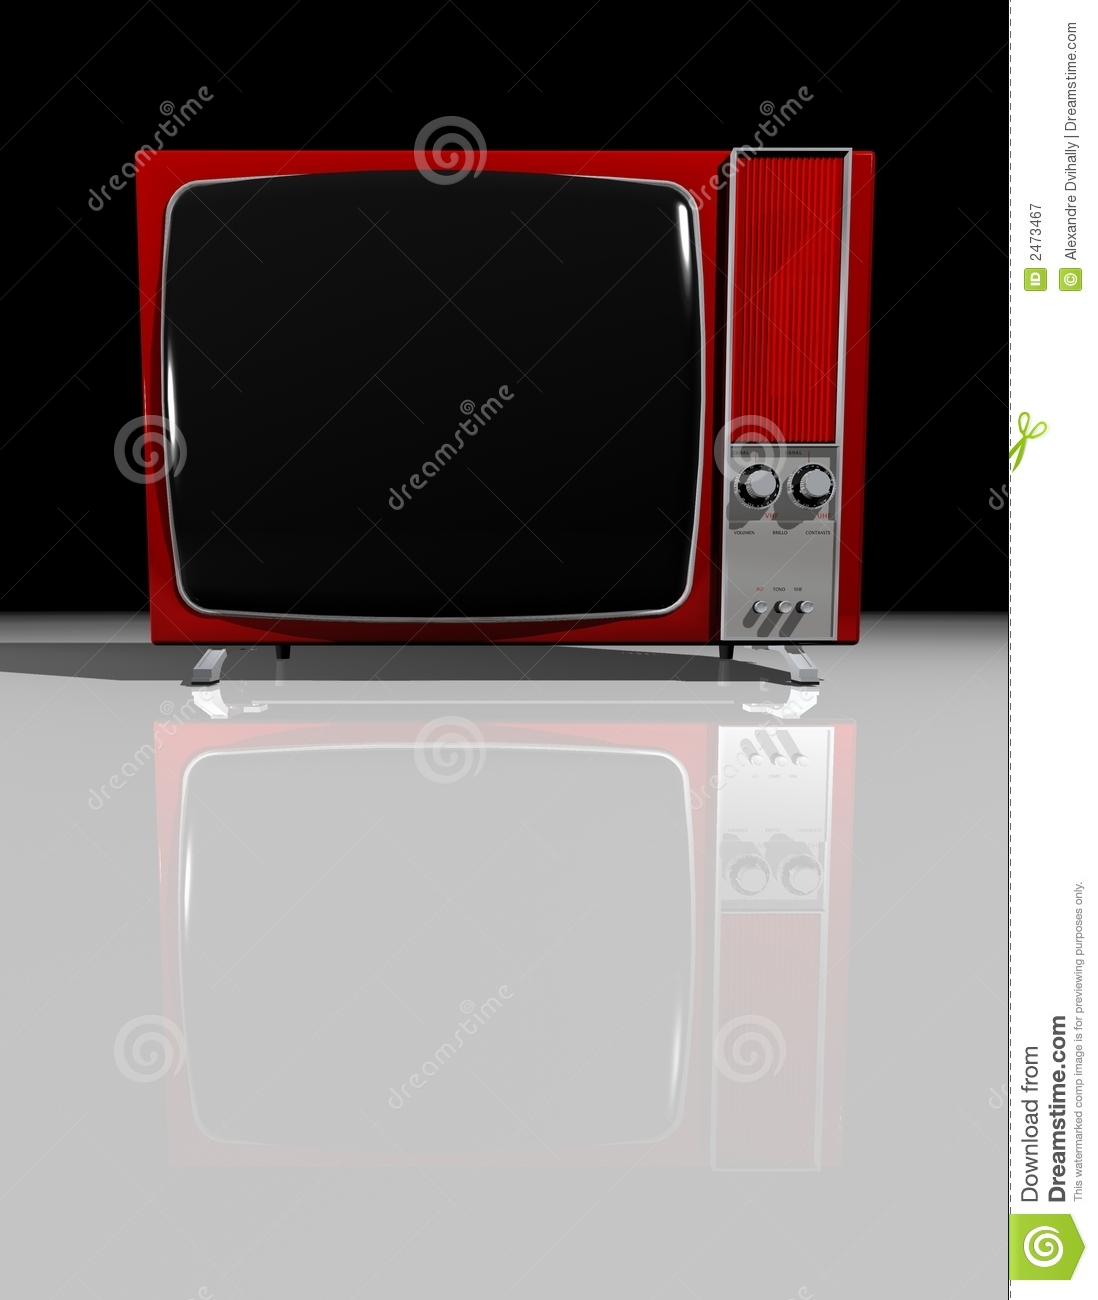 Old TV - RED Television